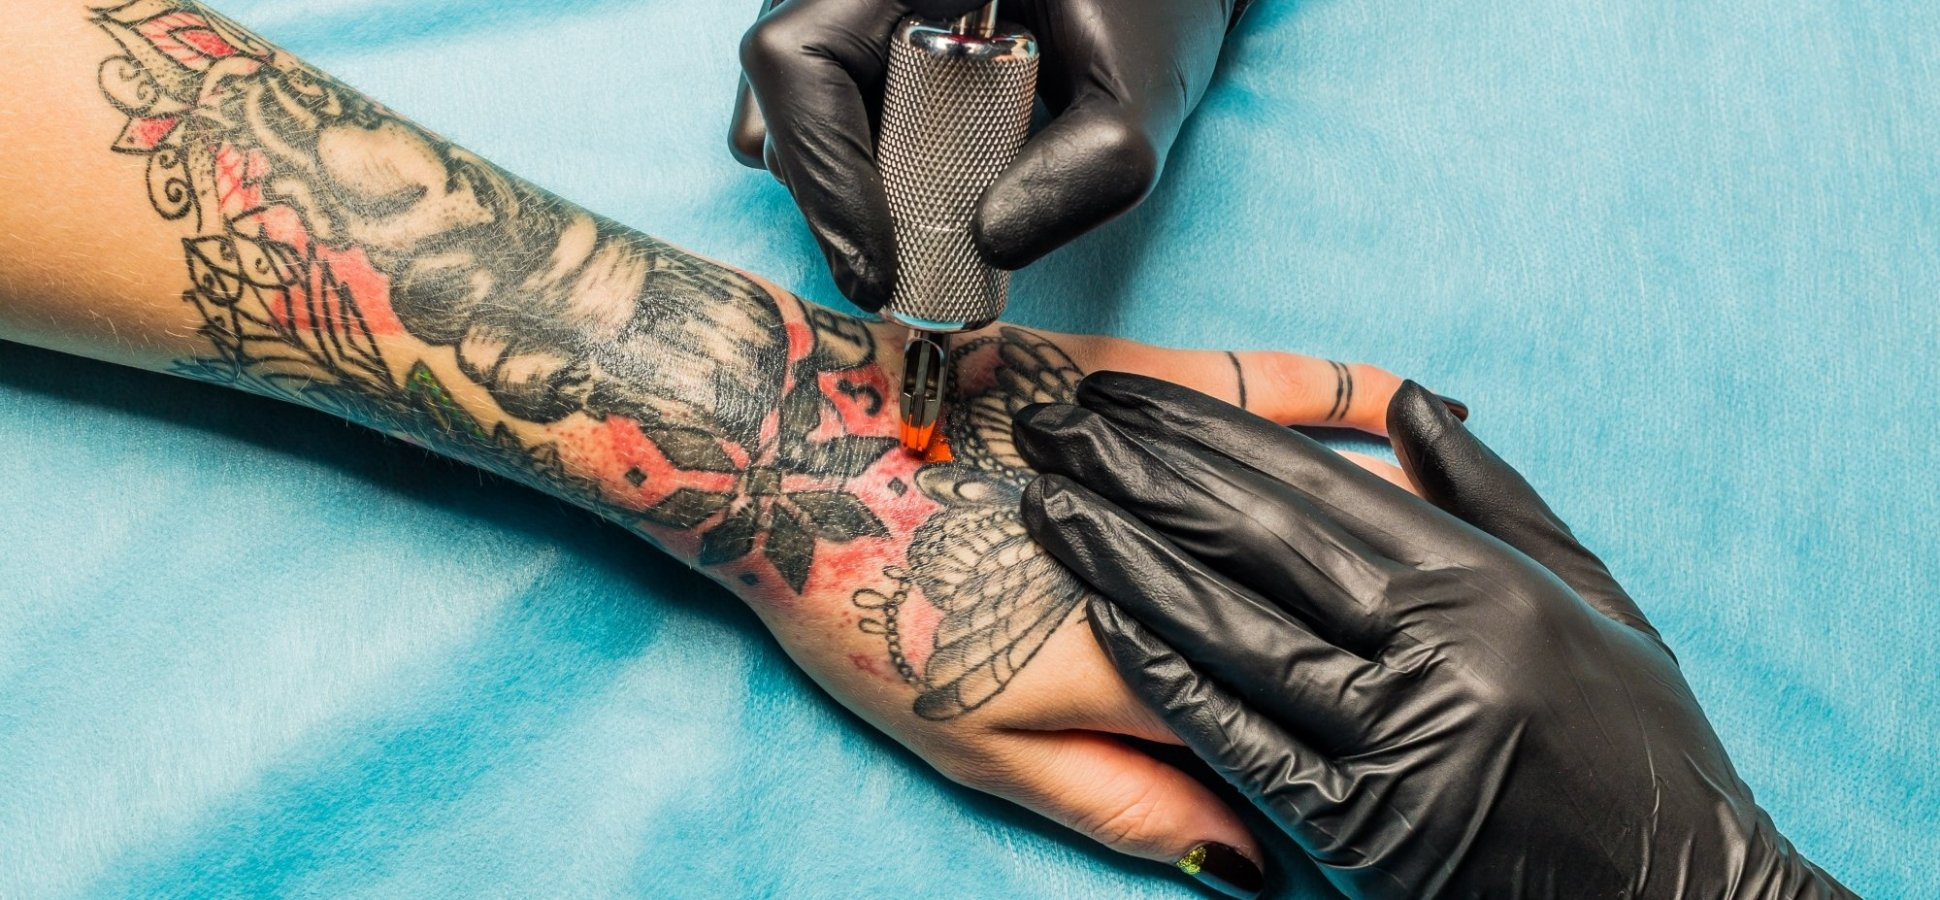 Forum on this topic: How Tattoos and Piercings Affect Your Ability , how-tattoos-and-piercings-affect-your-ability/